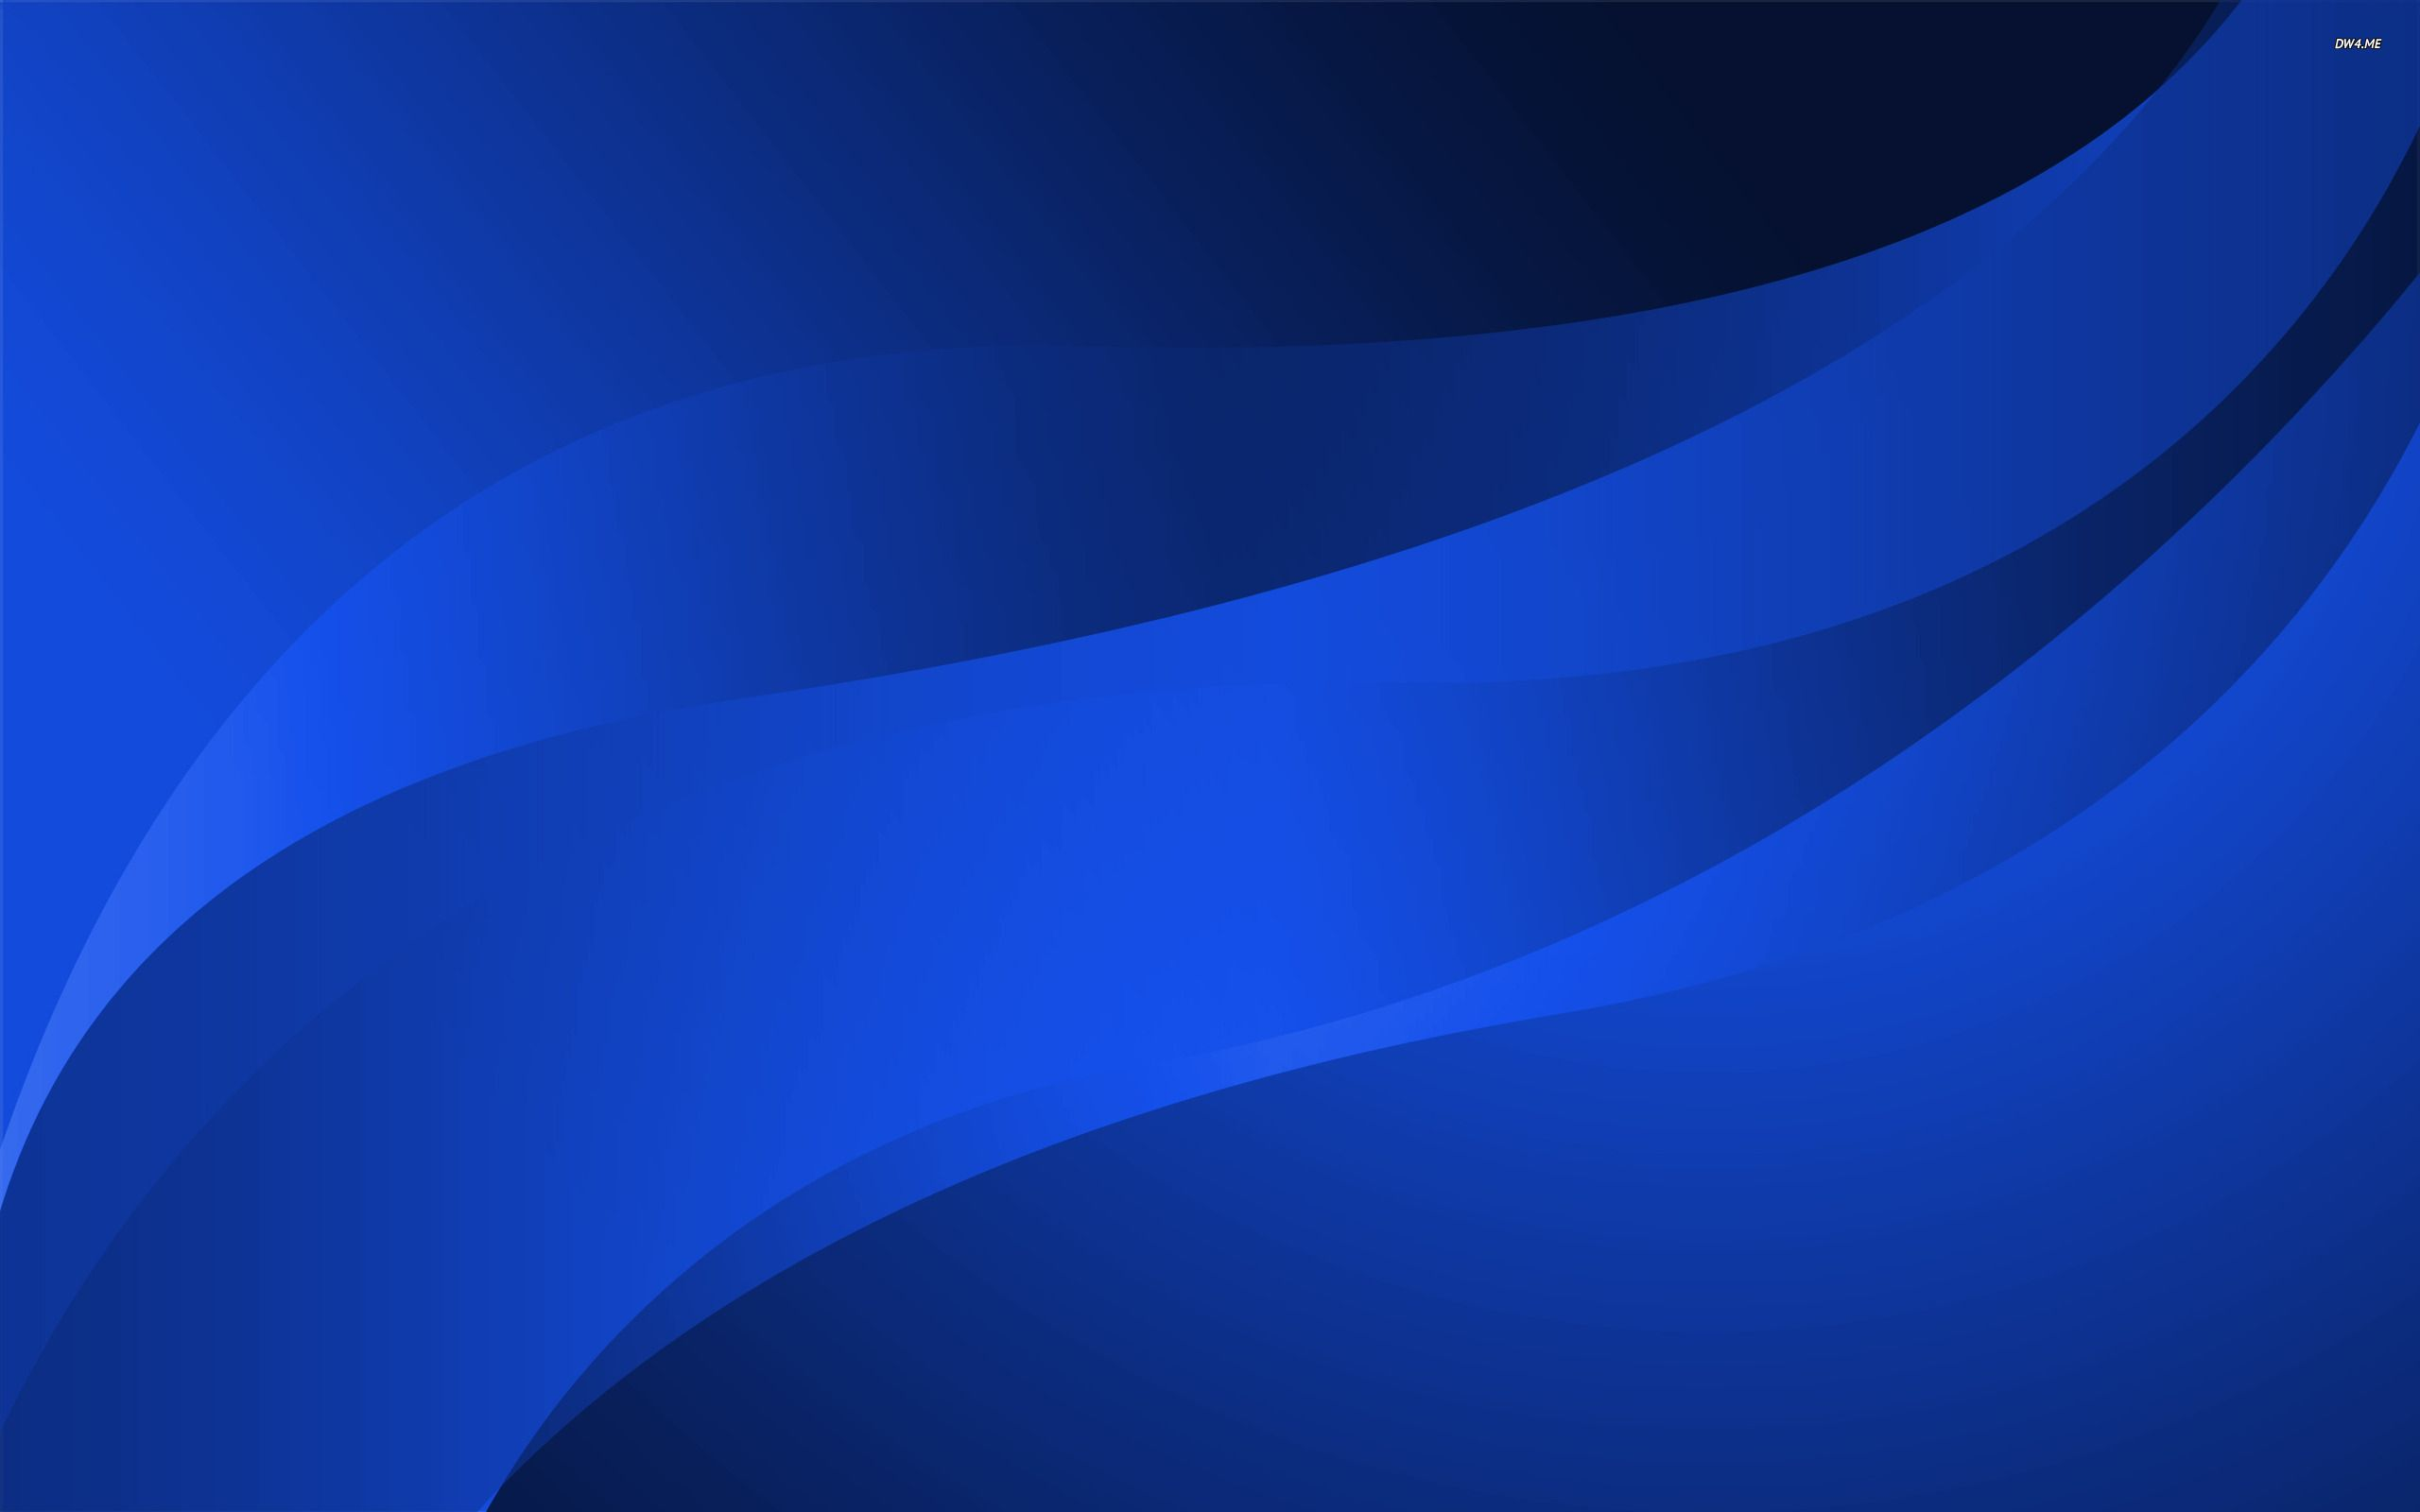 2560x1600 Widescreen Blue Background Wallpapers gratis